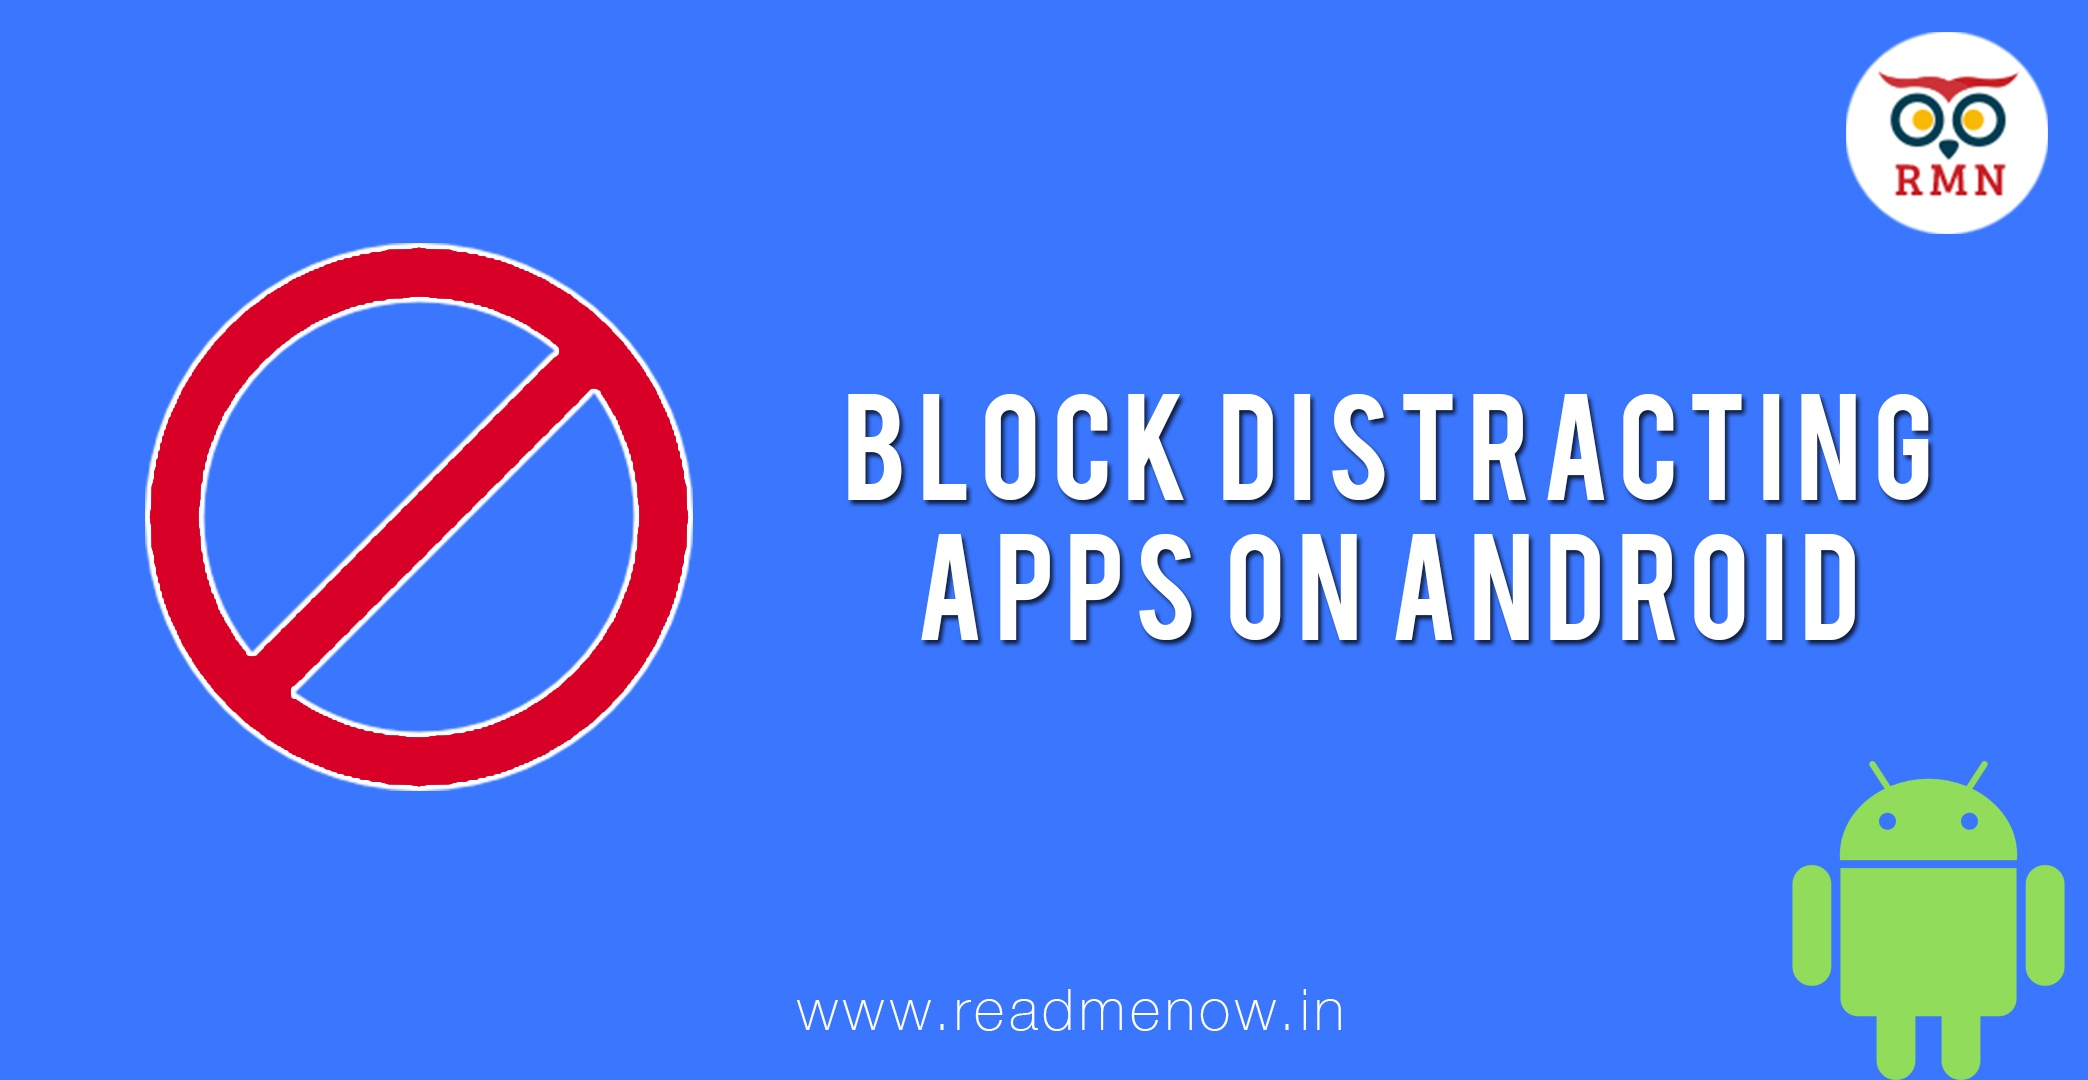 How To Block Distracting Apps On Android